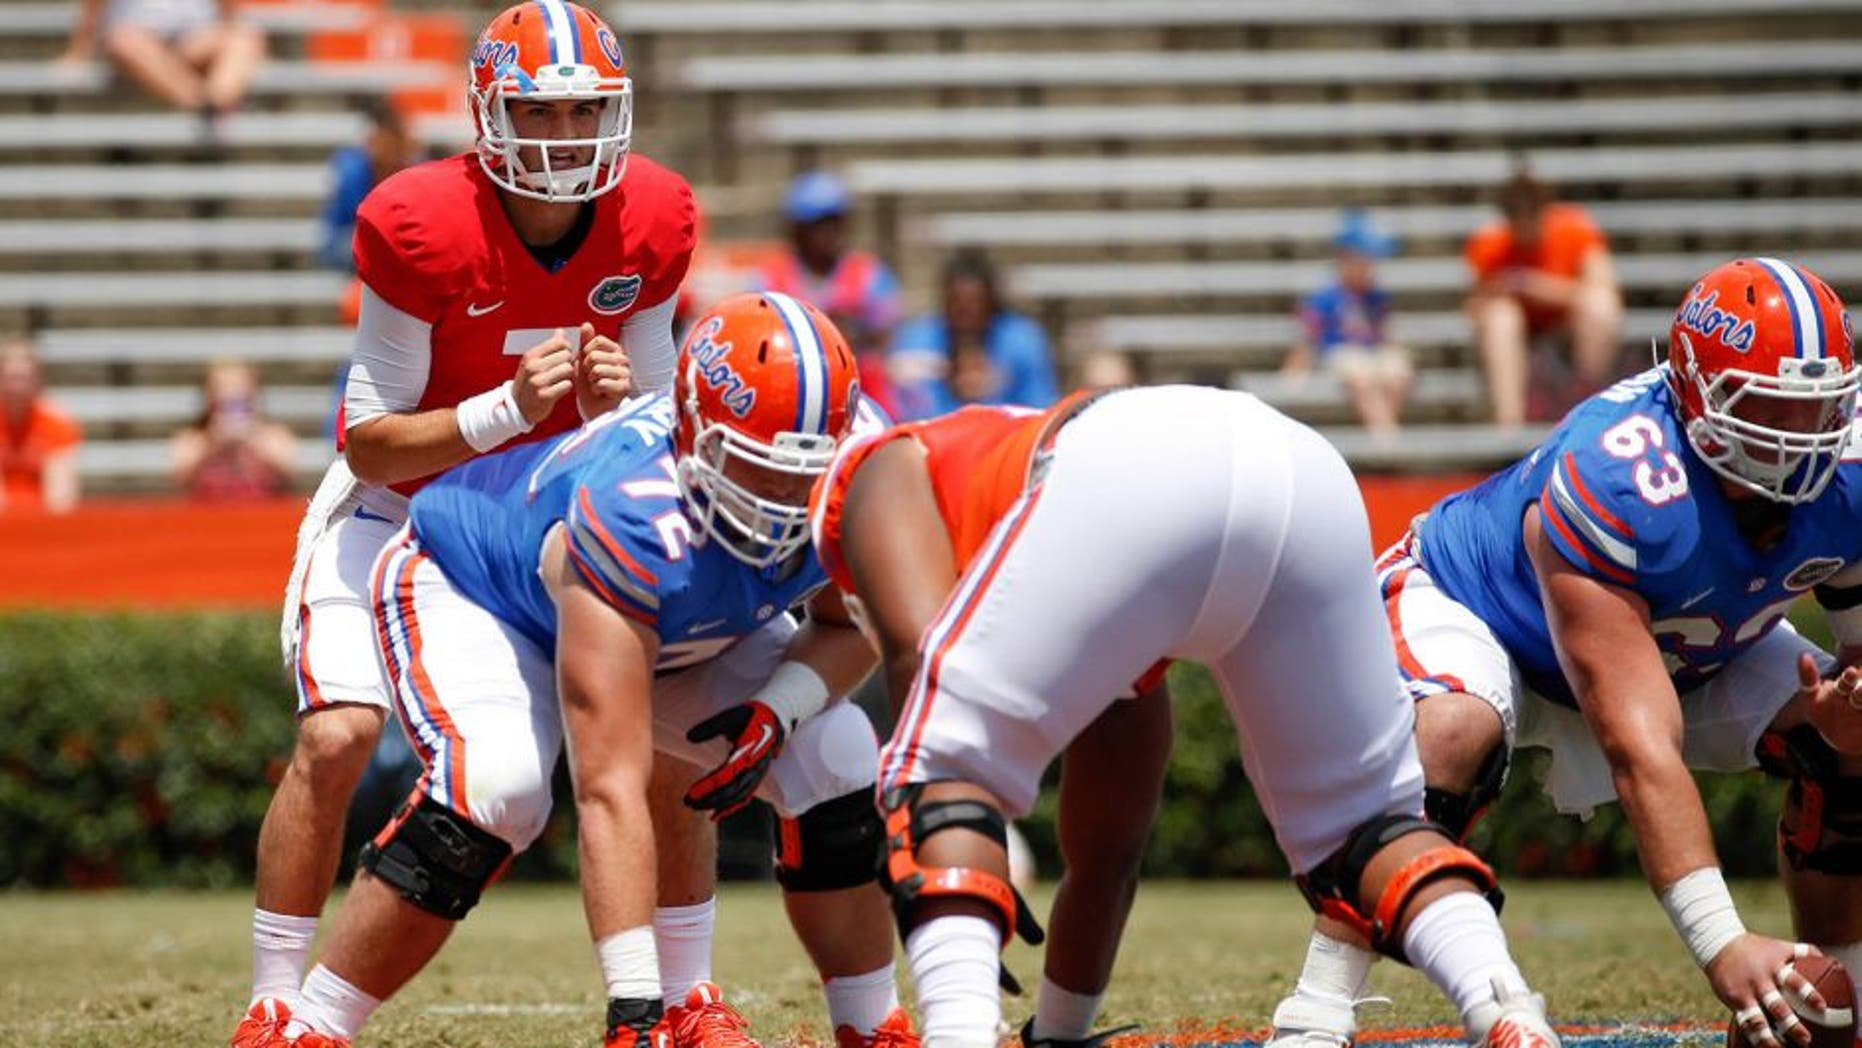 Apr 12, 2014; Gainesville, FL, USA; Florida Gators quarterback Will Grier (7) yells a snap count during the first half of the spring game at Ben Hill Griffin Stadium. Mandatory Credit: Rob Foldy-USA TODAY Sports